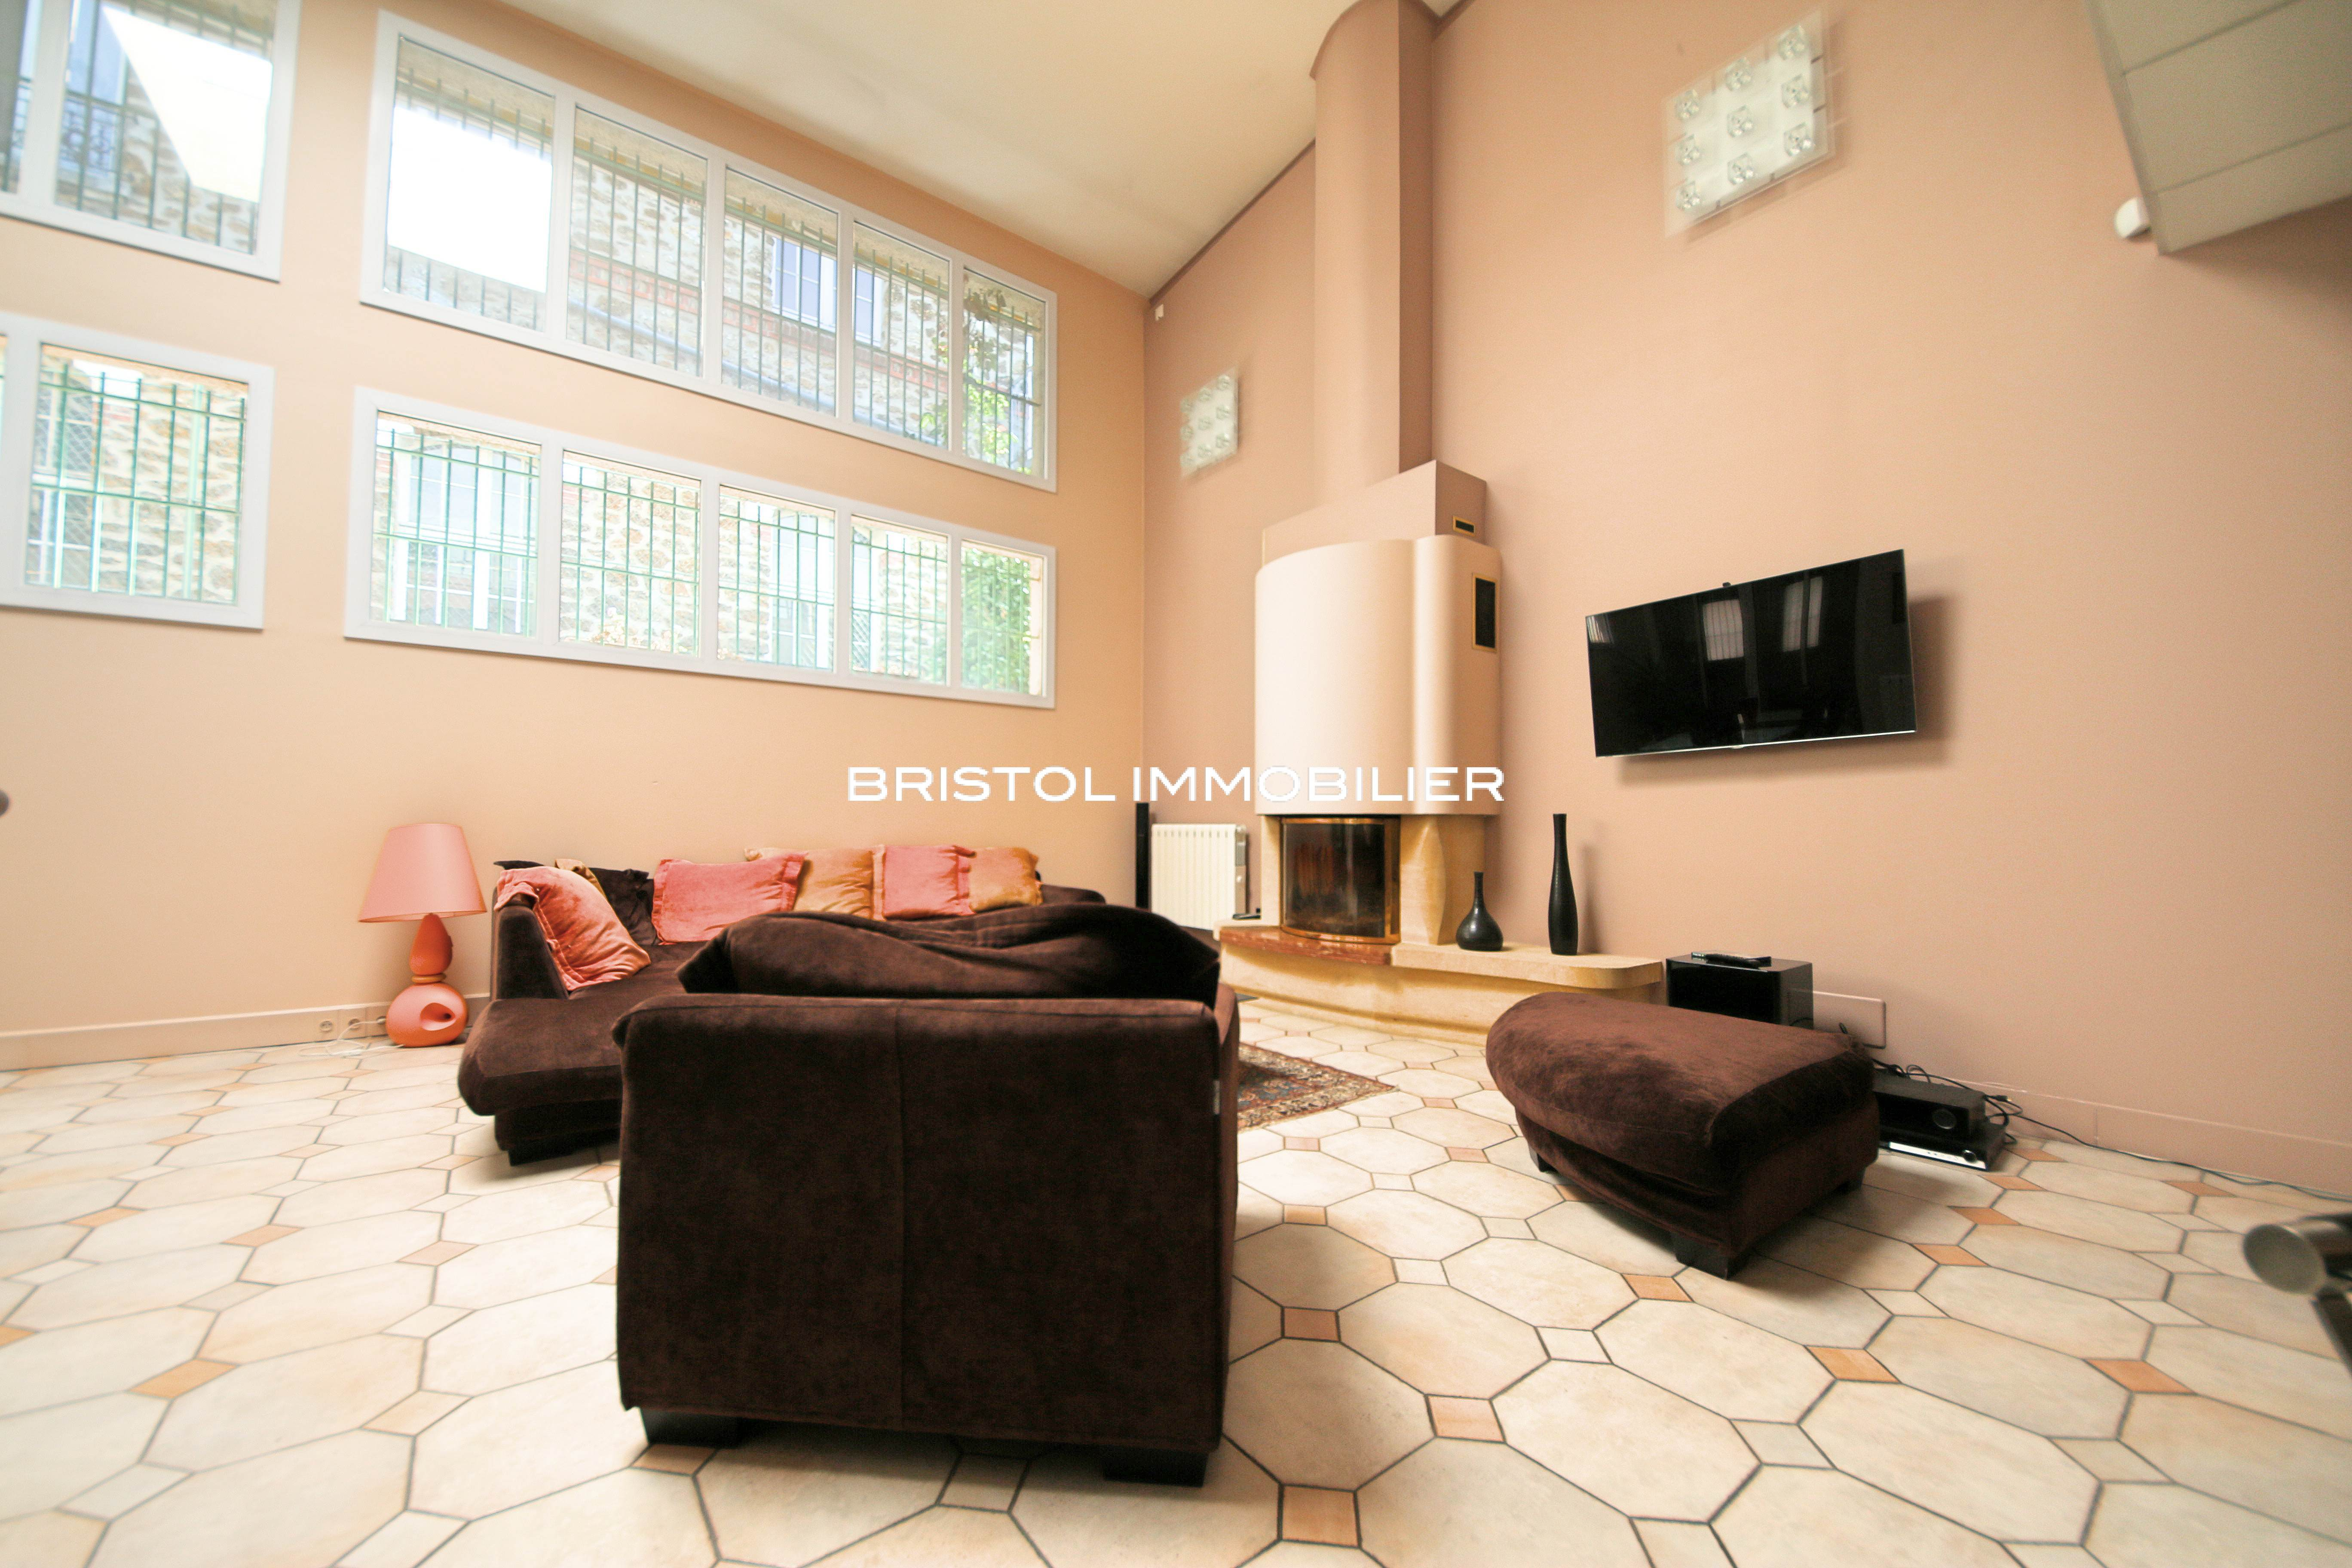 Immobilier romainville 93 annonces immobili res for Appartement atypique romainville